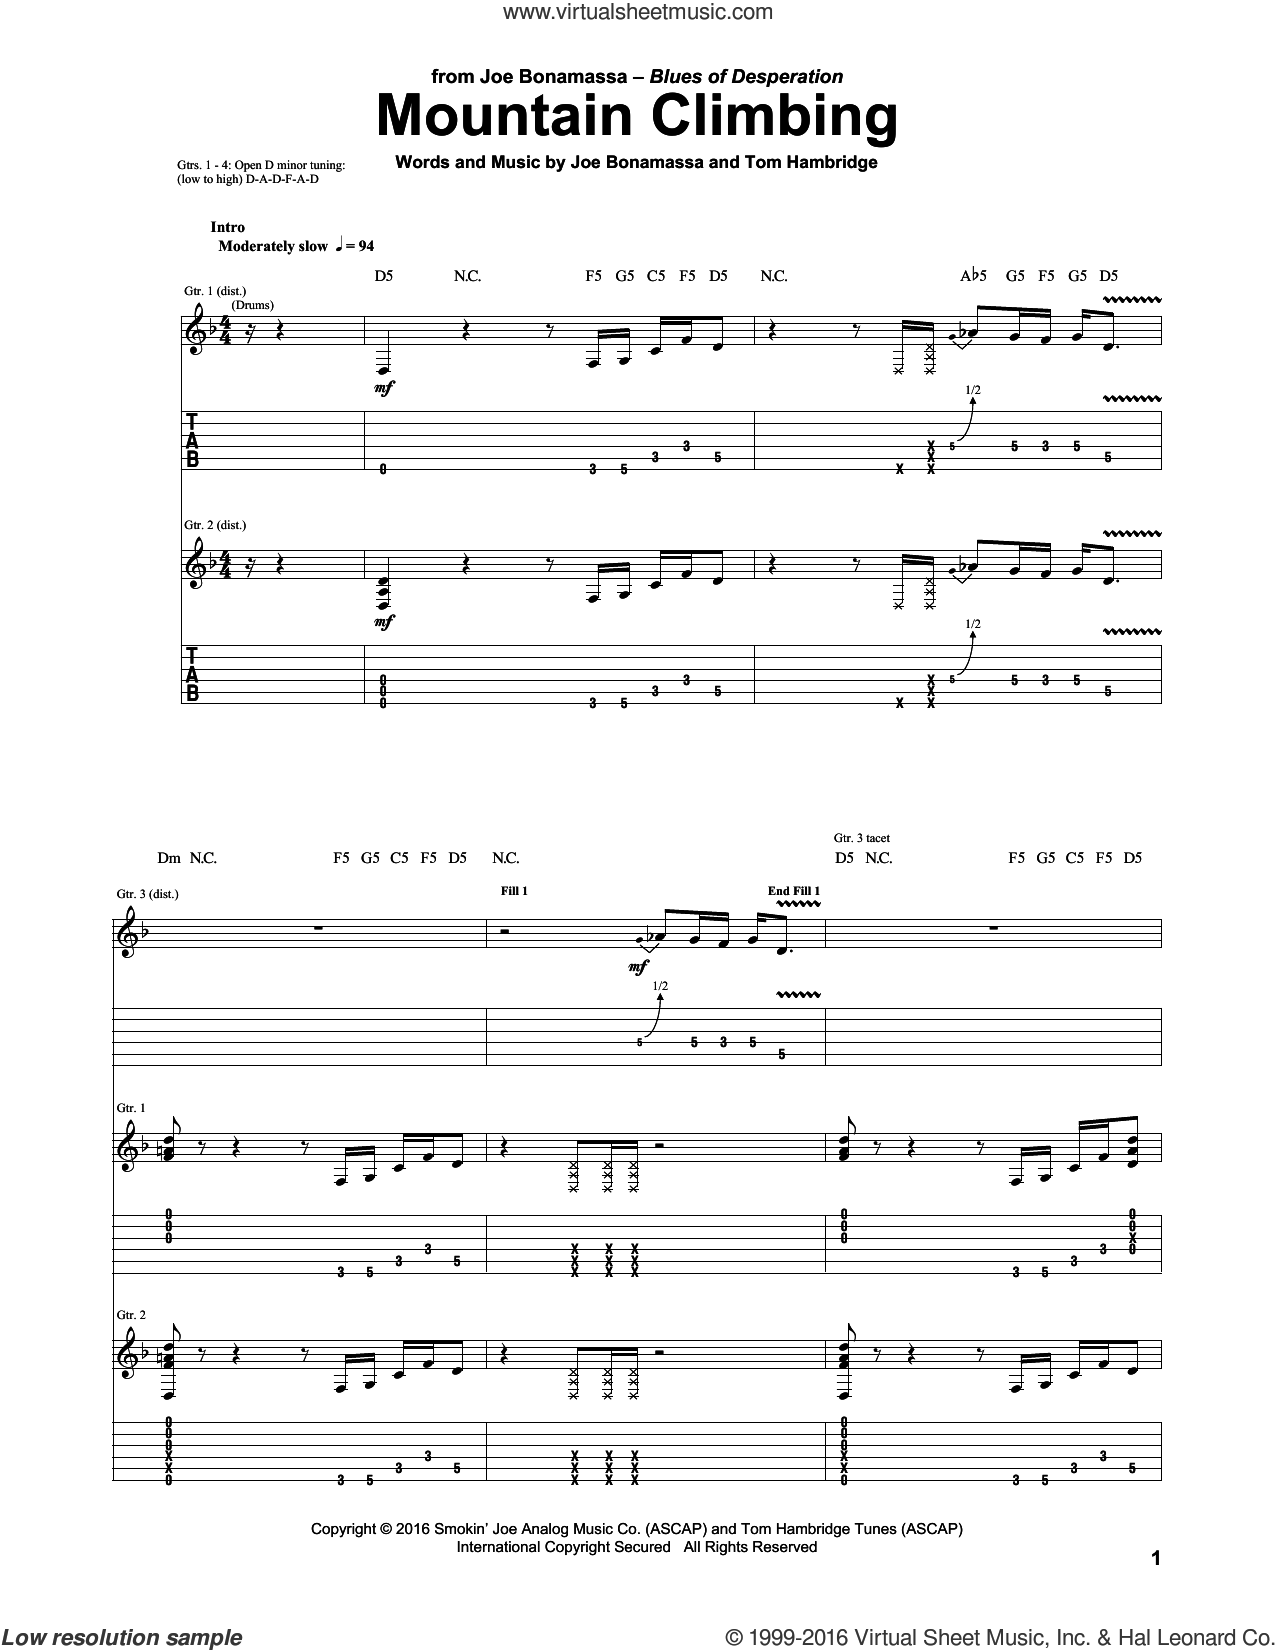 Mountain Climbing sheet music for guitar (tablature) by Joe Bonamassa, intermediate. Score Image Preview.